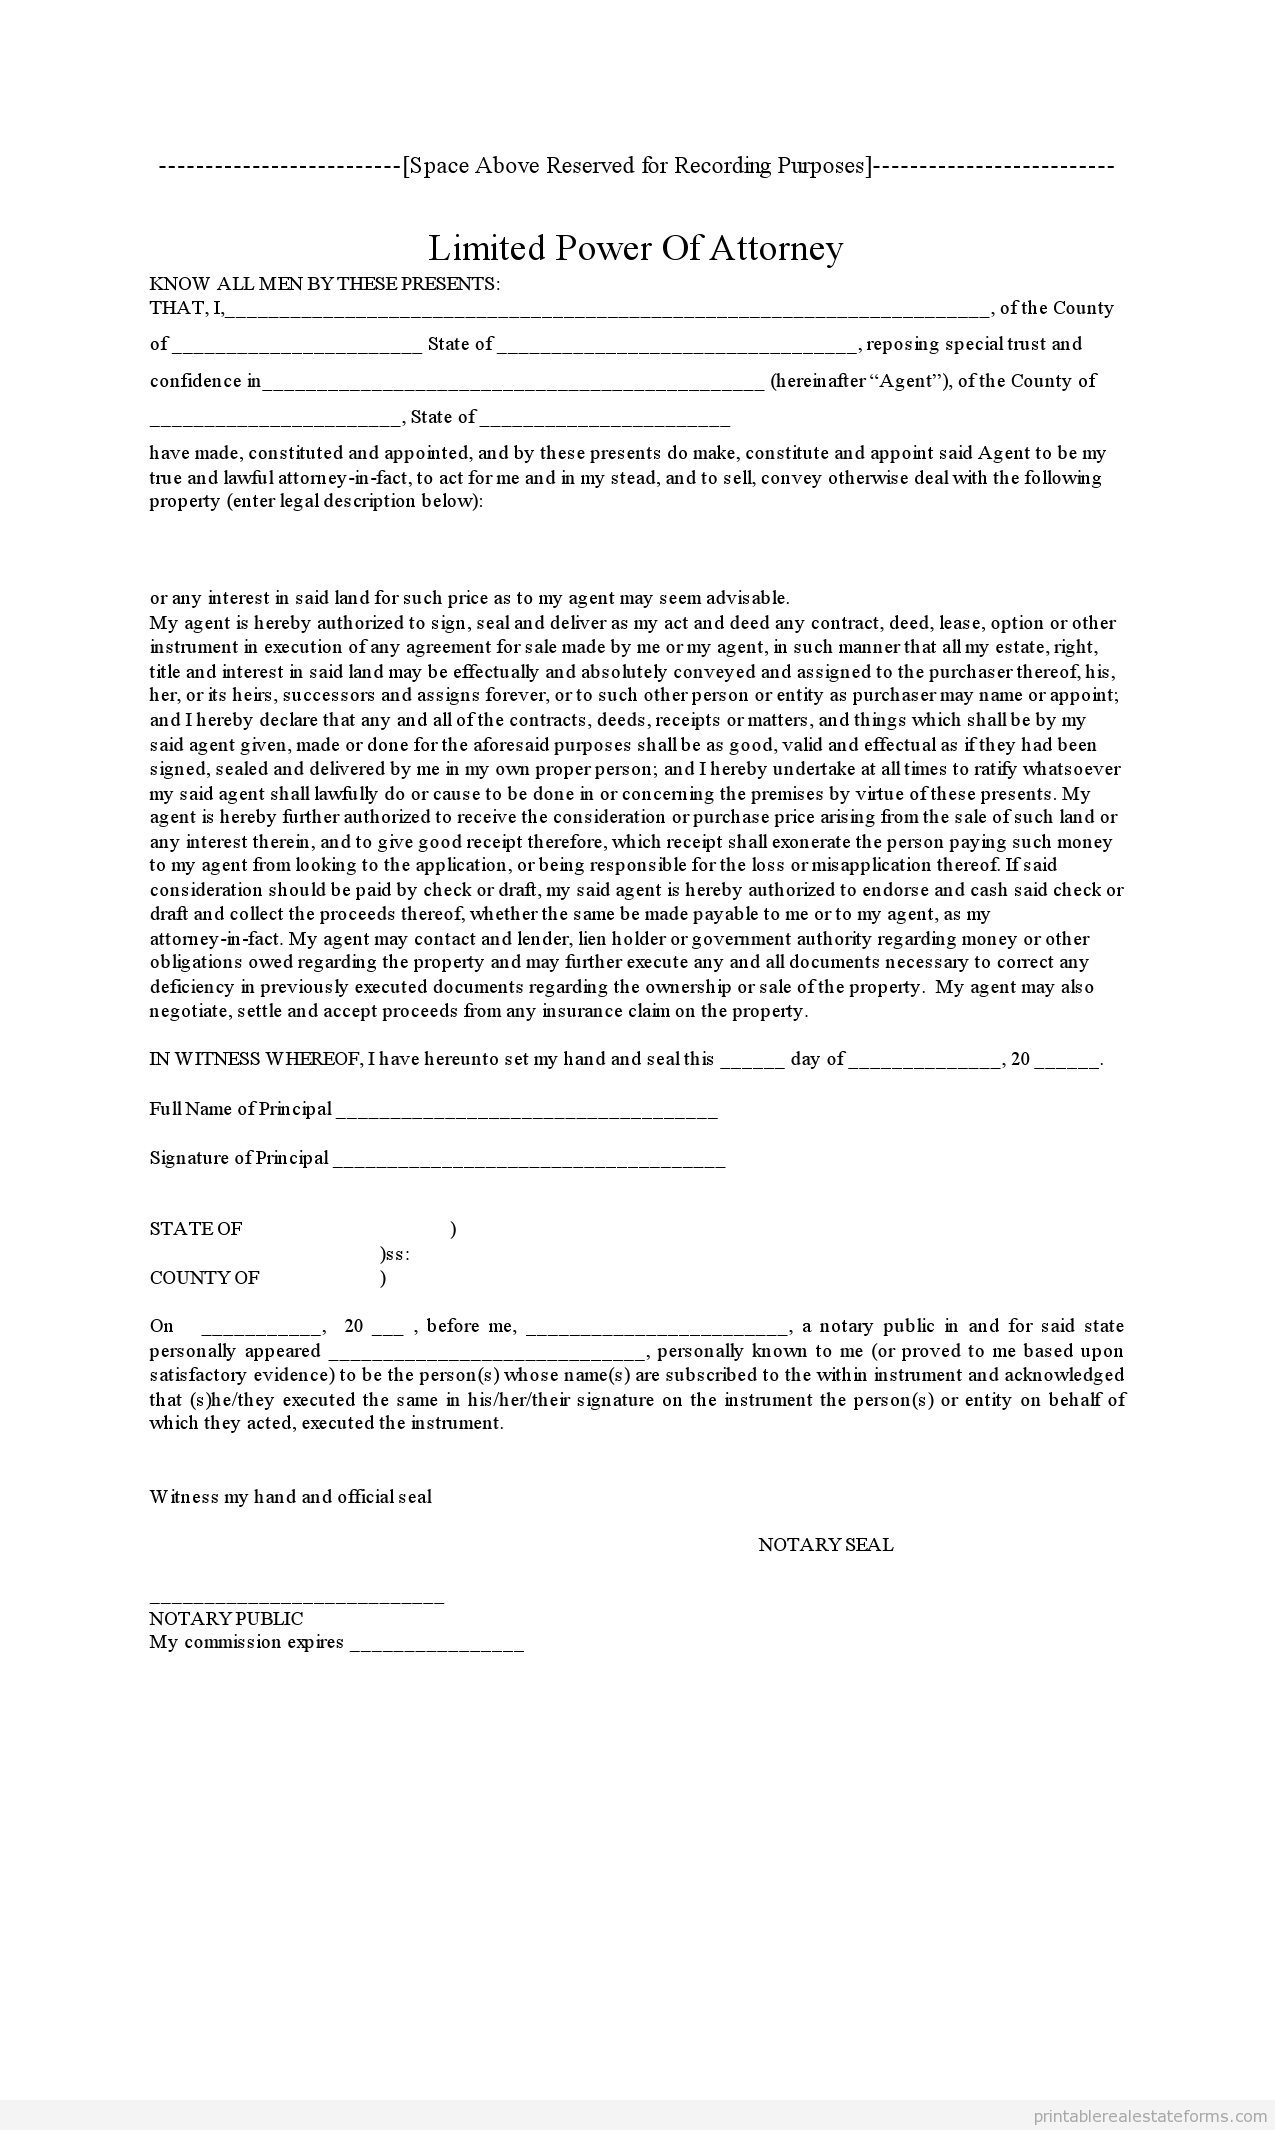 Sample Printable Power Of Atty Form  Printable Real Estate Forms